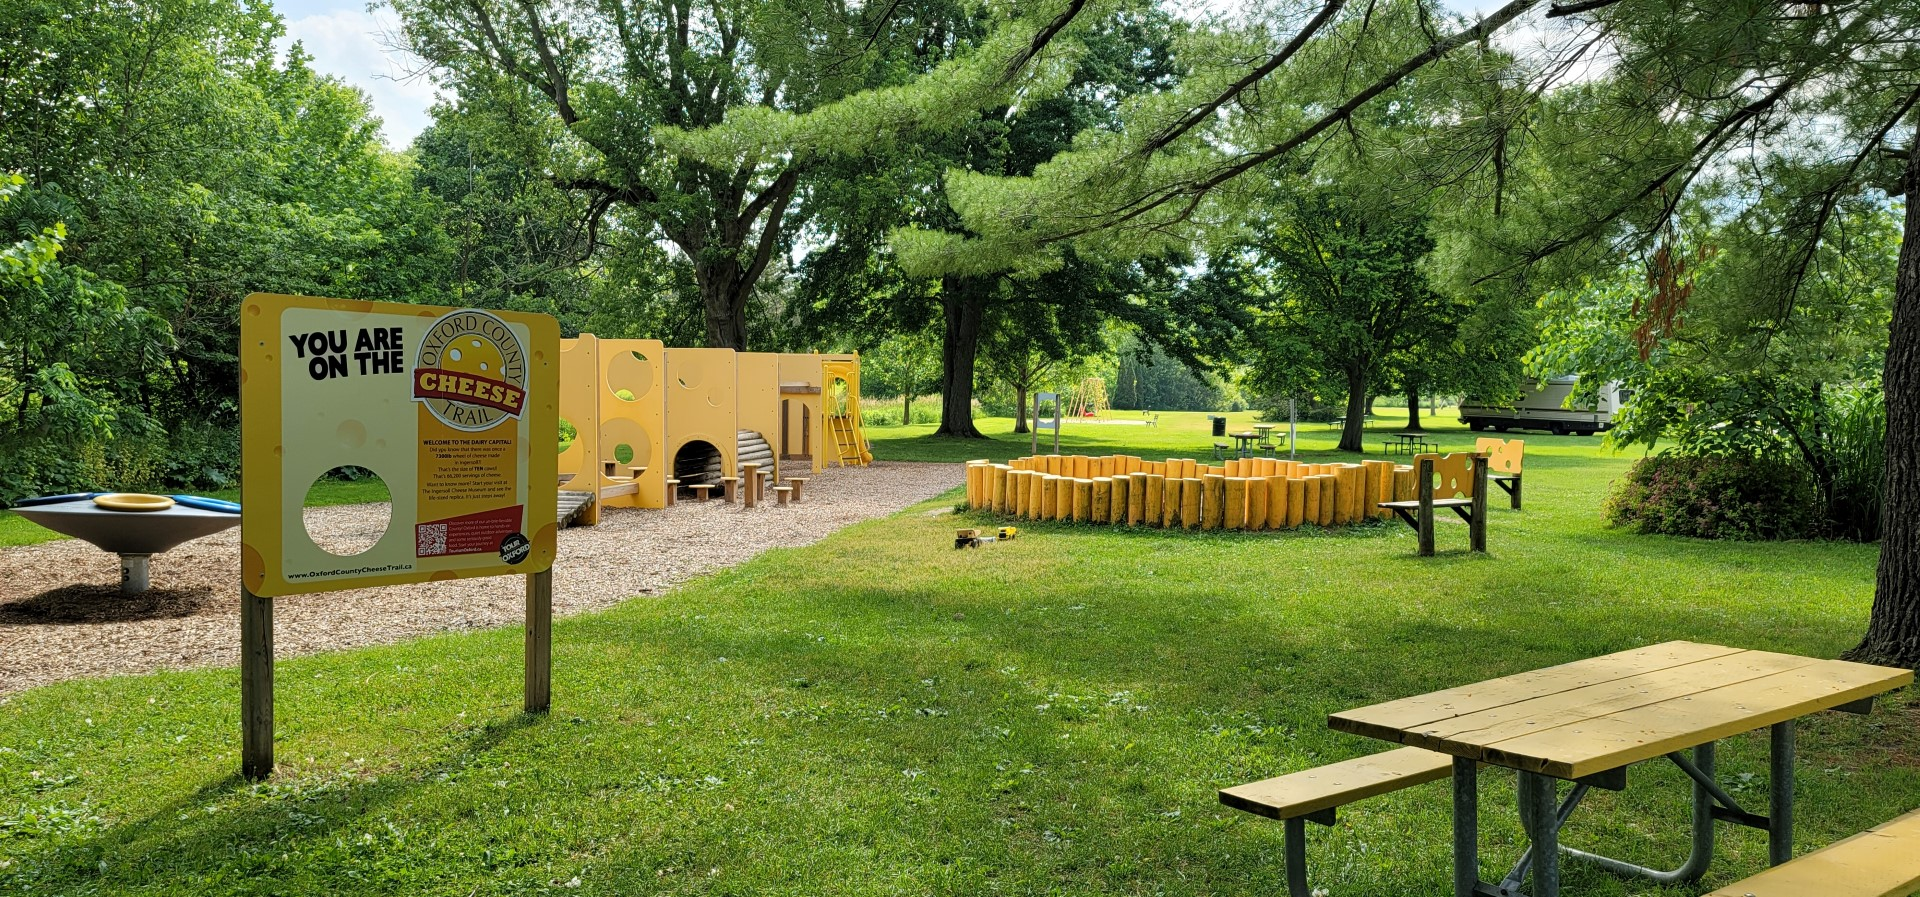 Oxford County Cheese Trail with kids playground